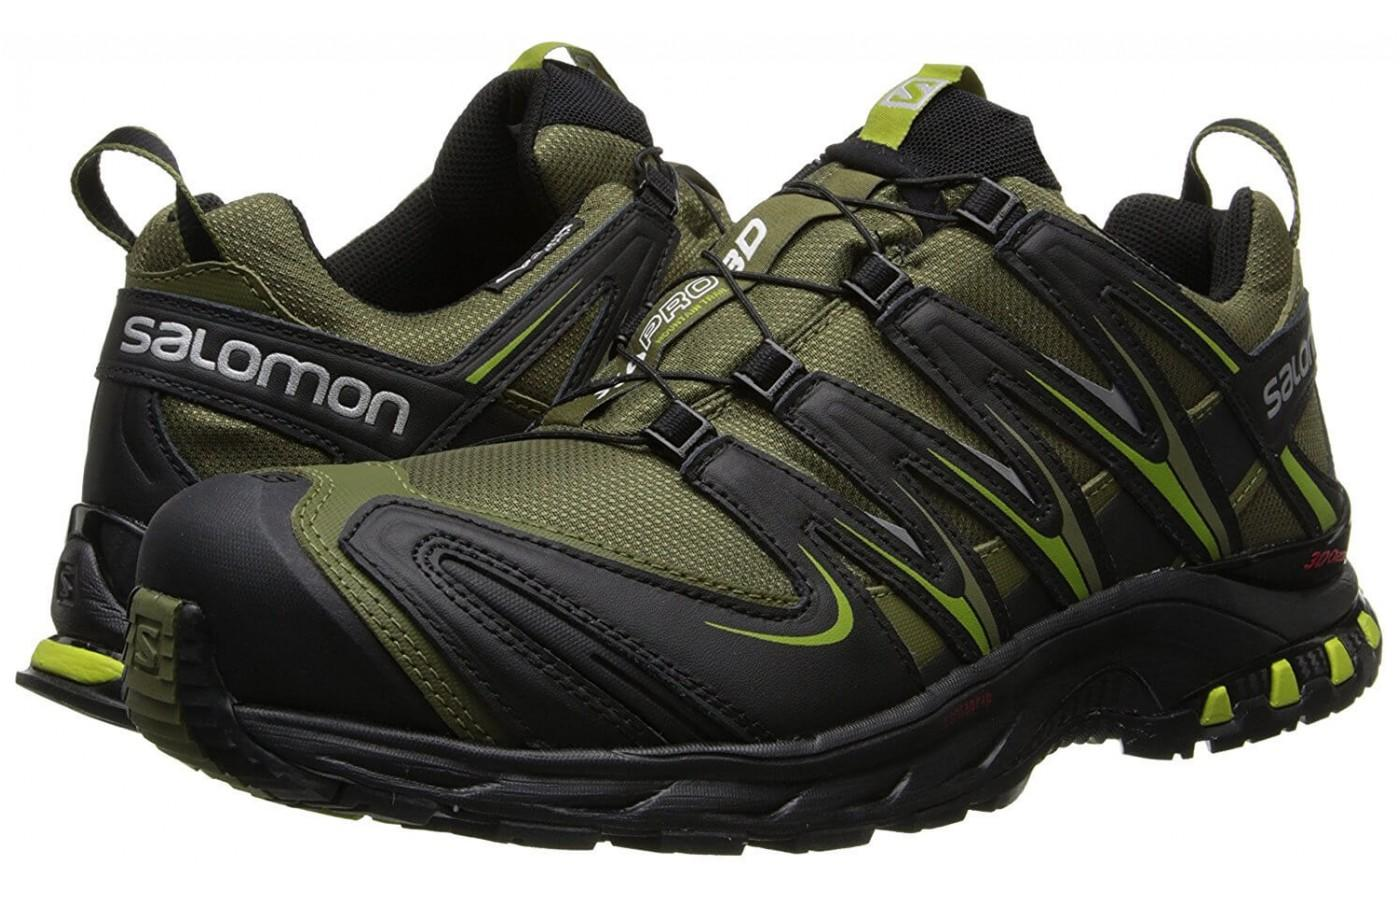 the Salomon XA Pro 3D CS WP is a trail shoe for hikers and runners that go into harsh conditions and extreme climates